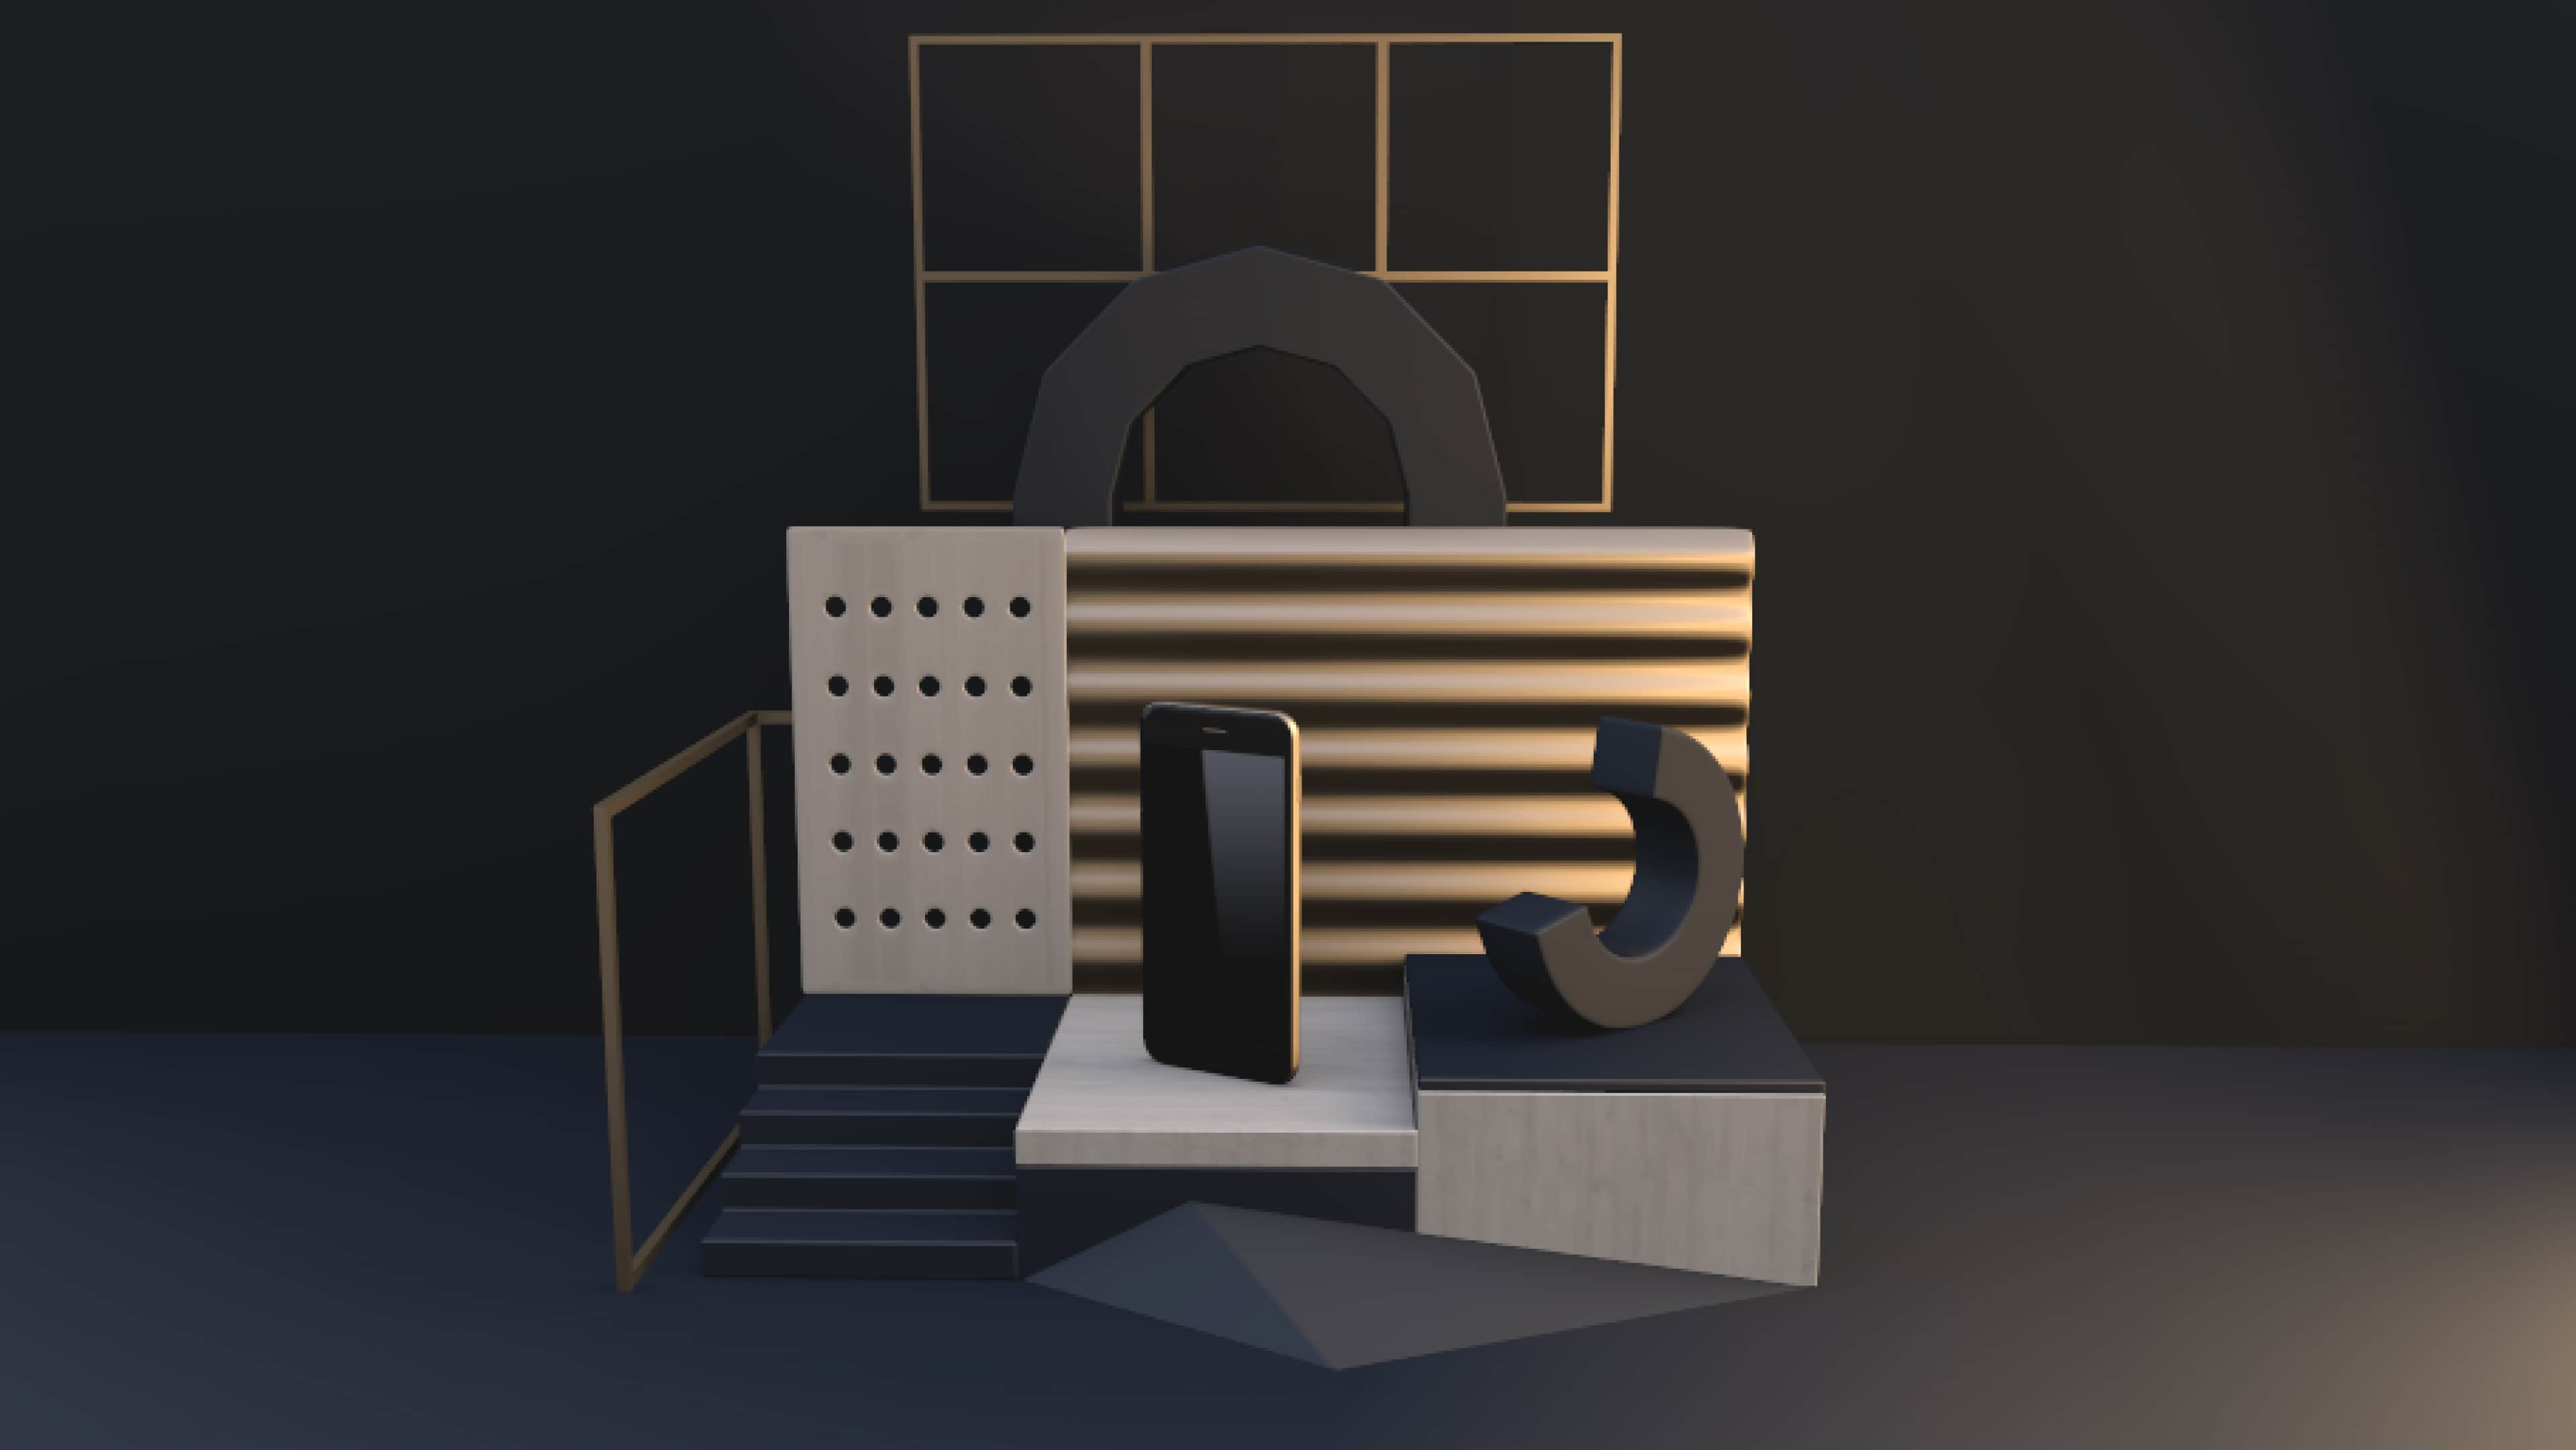 abstract-mockup-3D-design-vectary.jpg